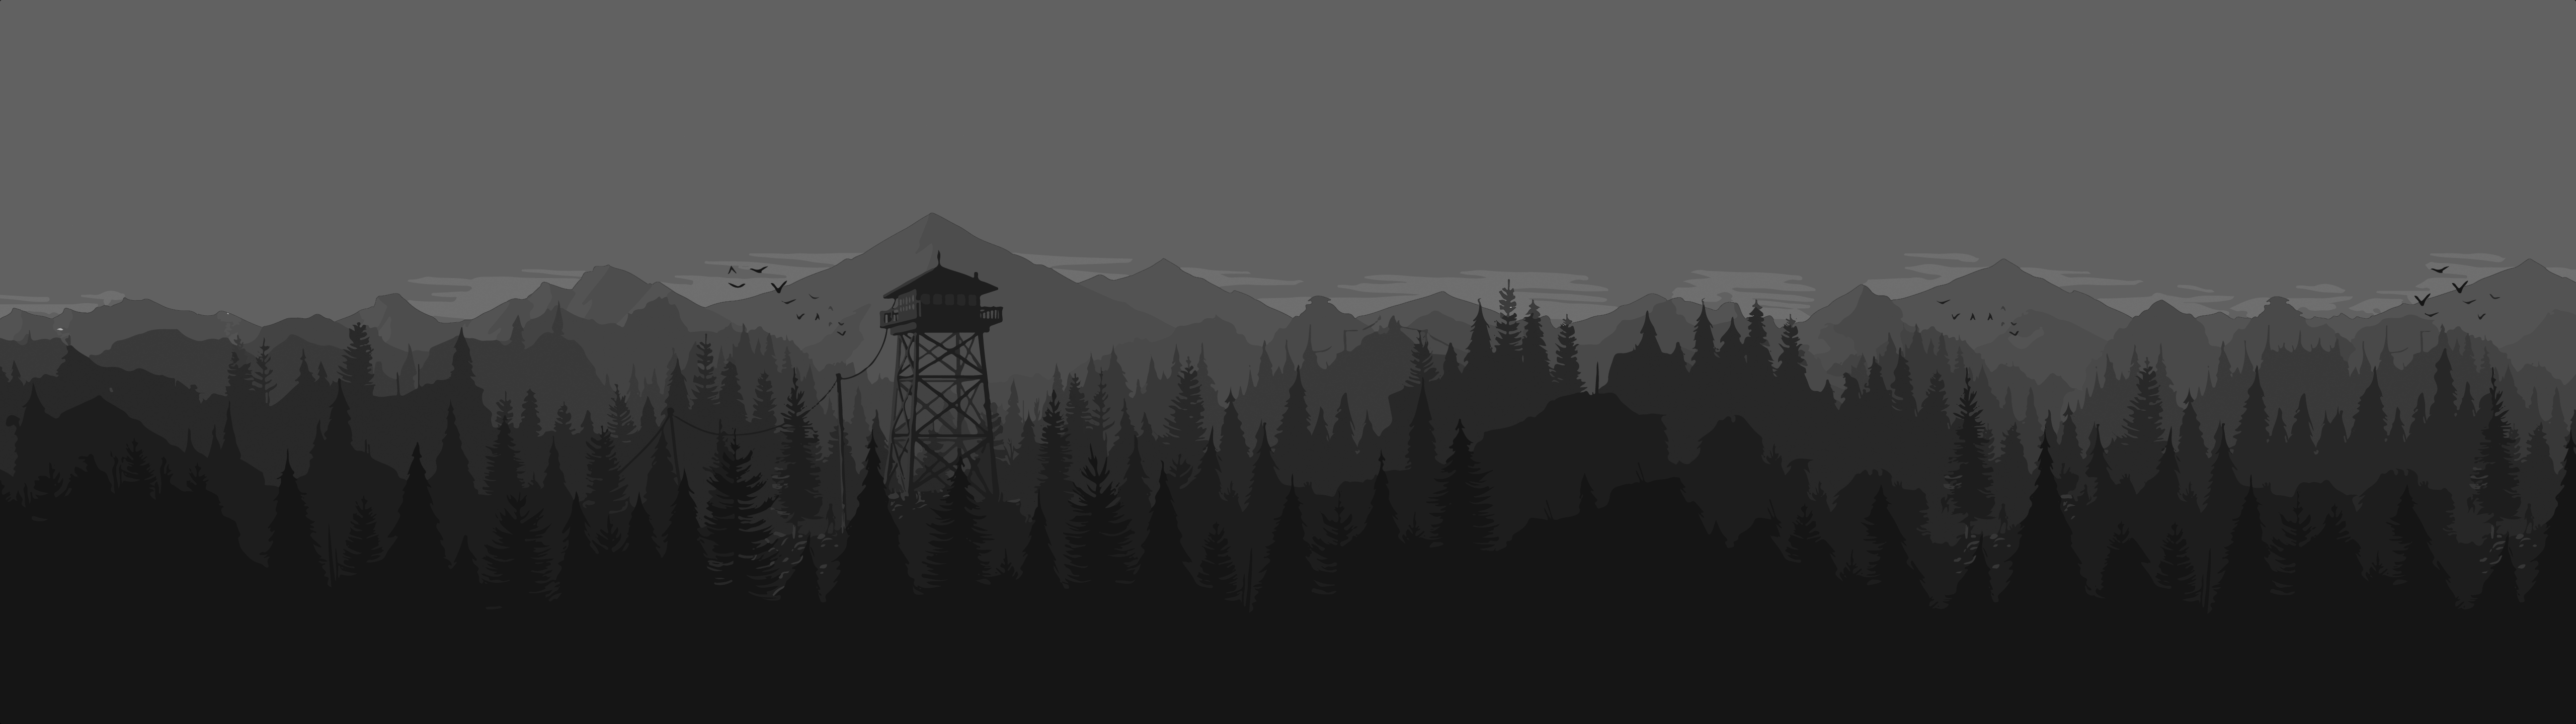 Greyscale Firewatch 5120x1440 Greyscale Nature Pictures Firewatch